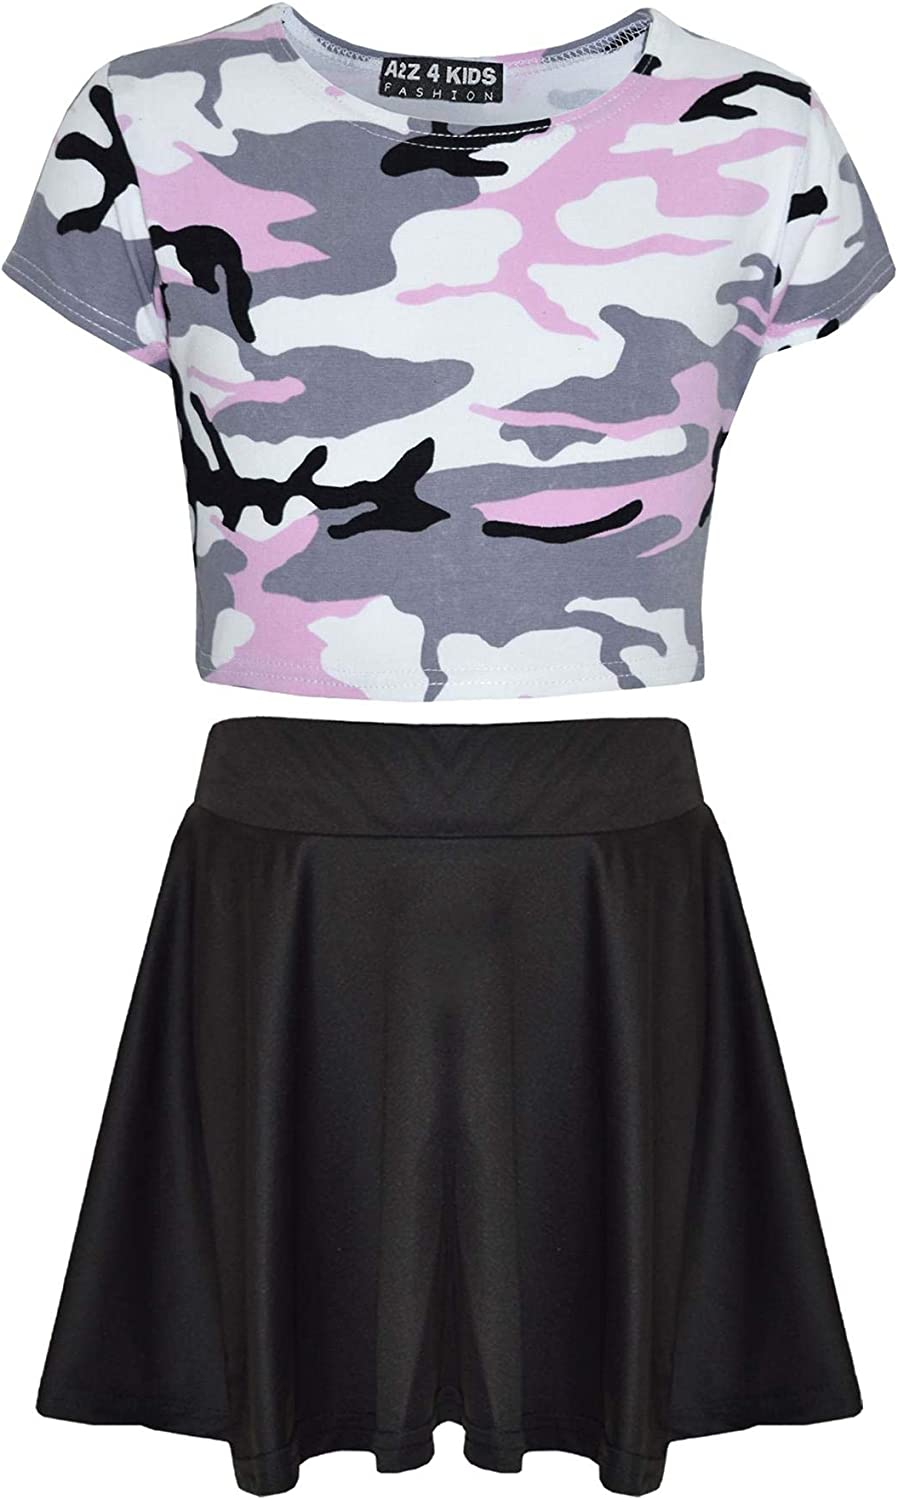 Girls S//S Top /& Leggings Outfits /& Hair Clips Ages 12-13 OR 6-7